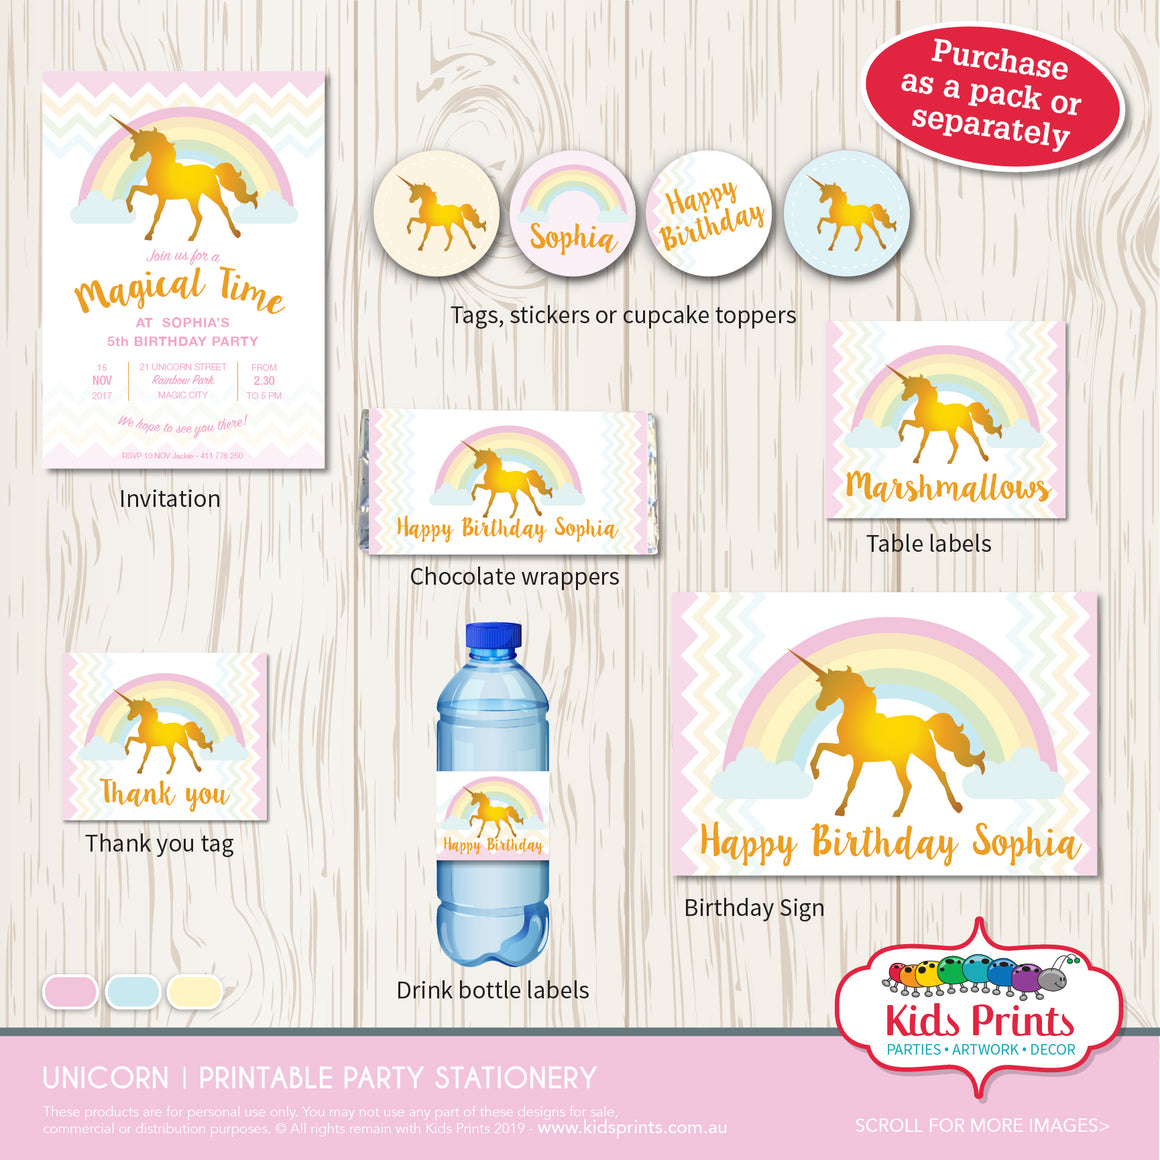 Unicorn Theme - Printable Party Stationery - Kids Prints Online - kids wall art printable - nursery art printable - printable invitations - digital invitations - kids wall art - kids prints